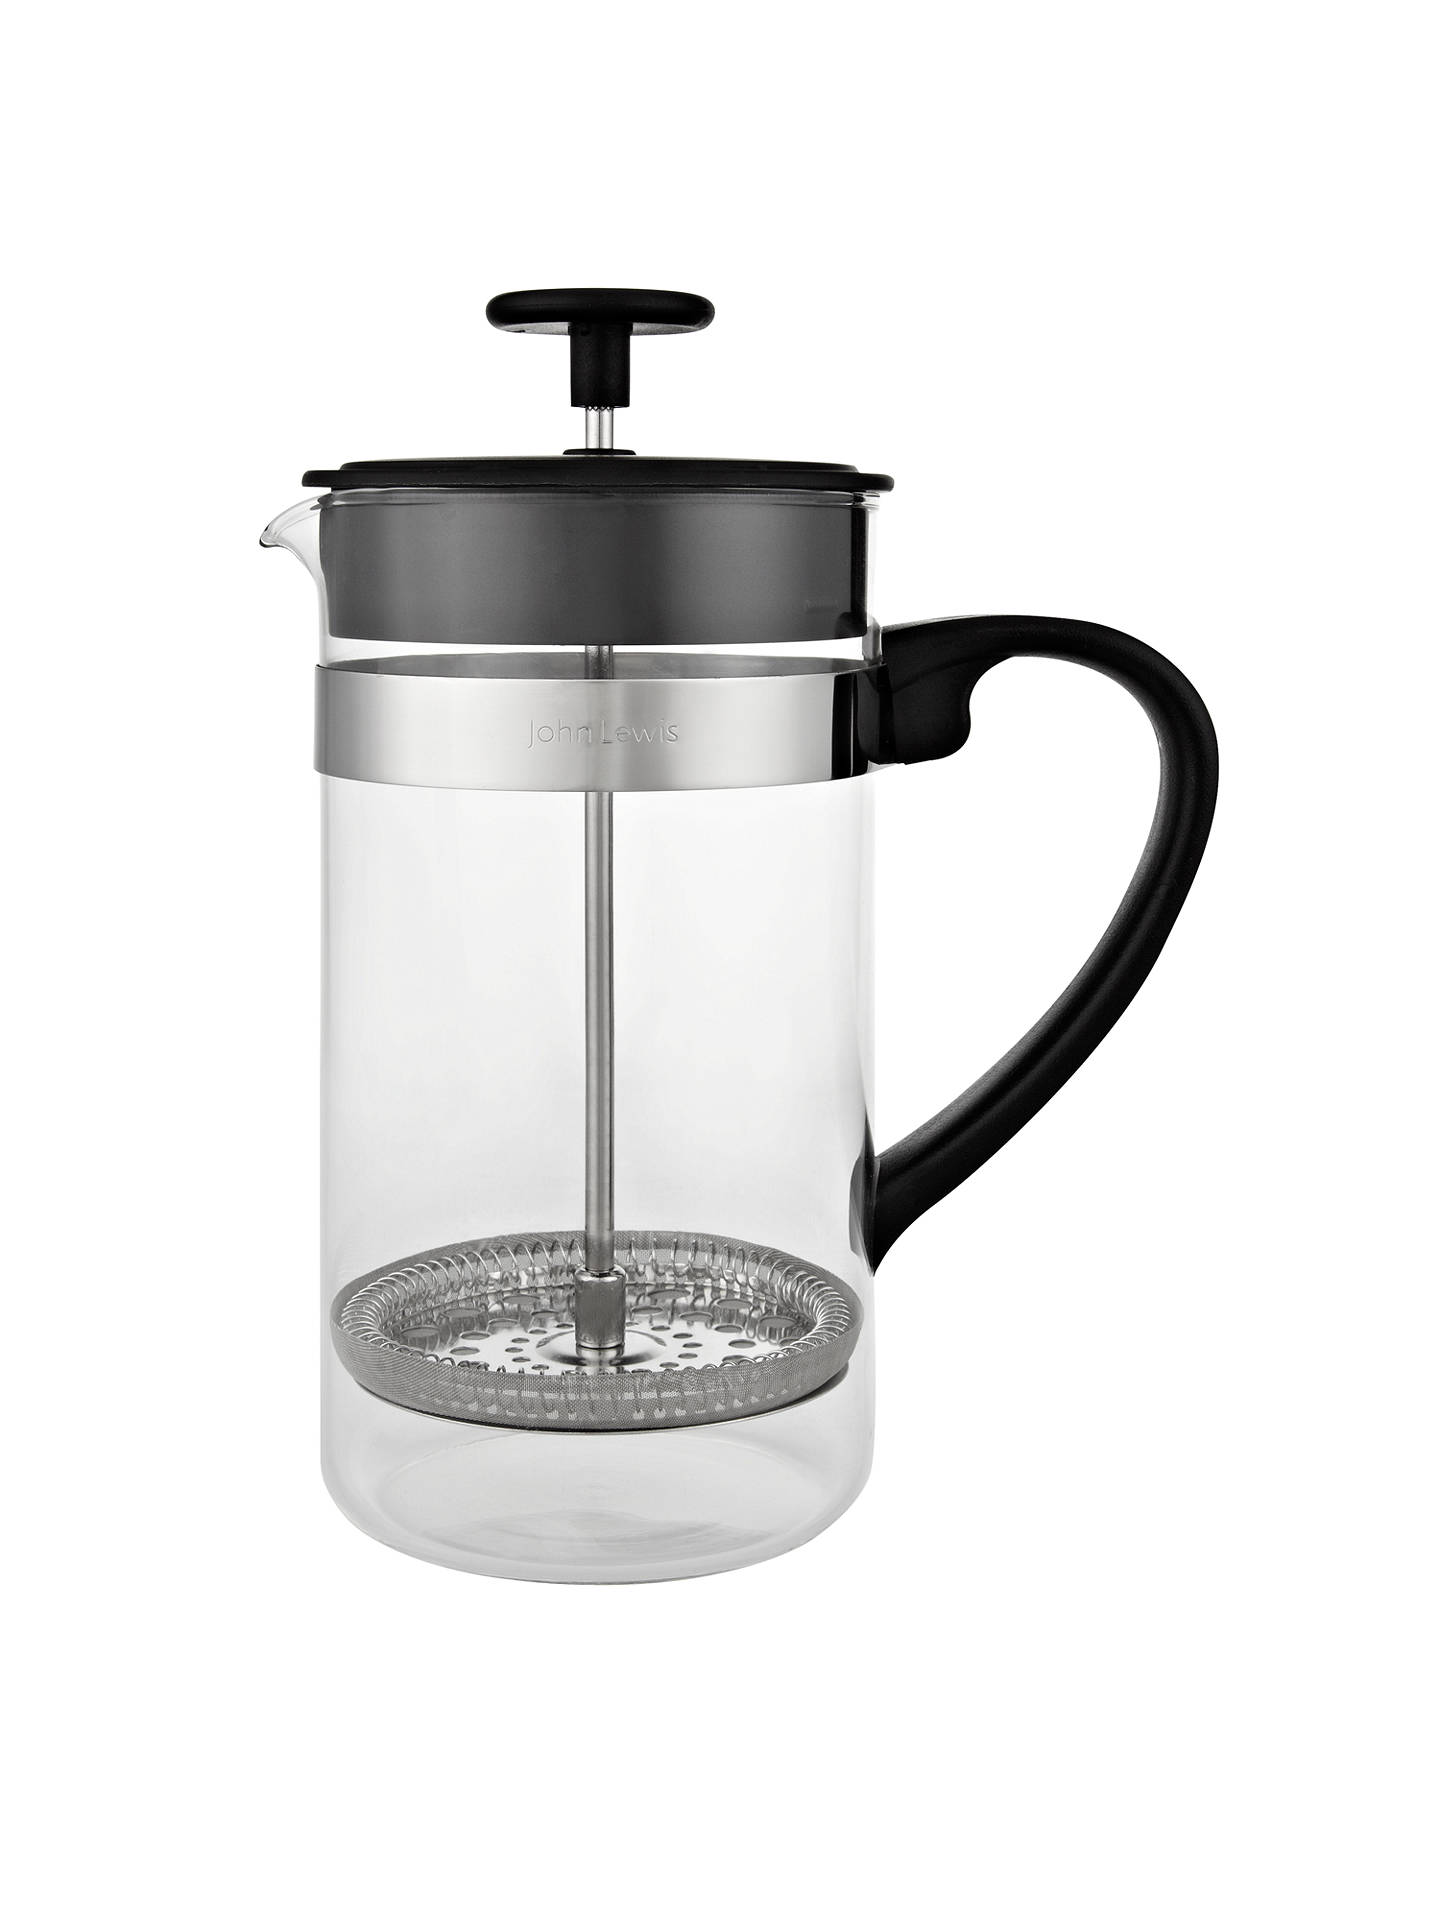 house by john lewis aroma cafetiere at john lewis partners. Black Bedroom Furniture Sets. Home Design Ideas